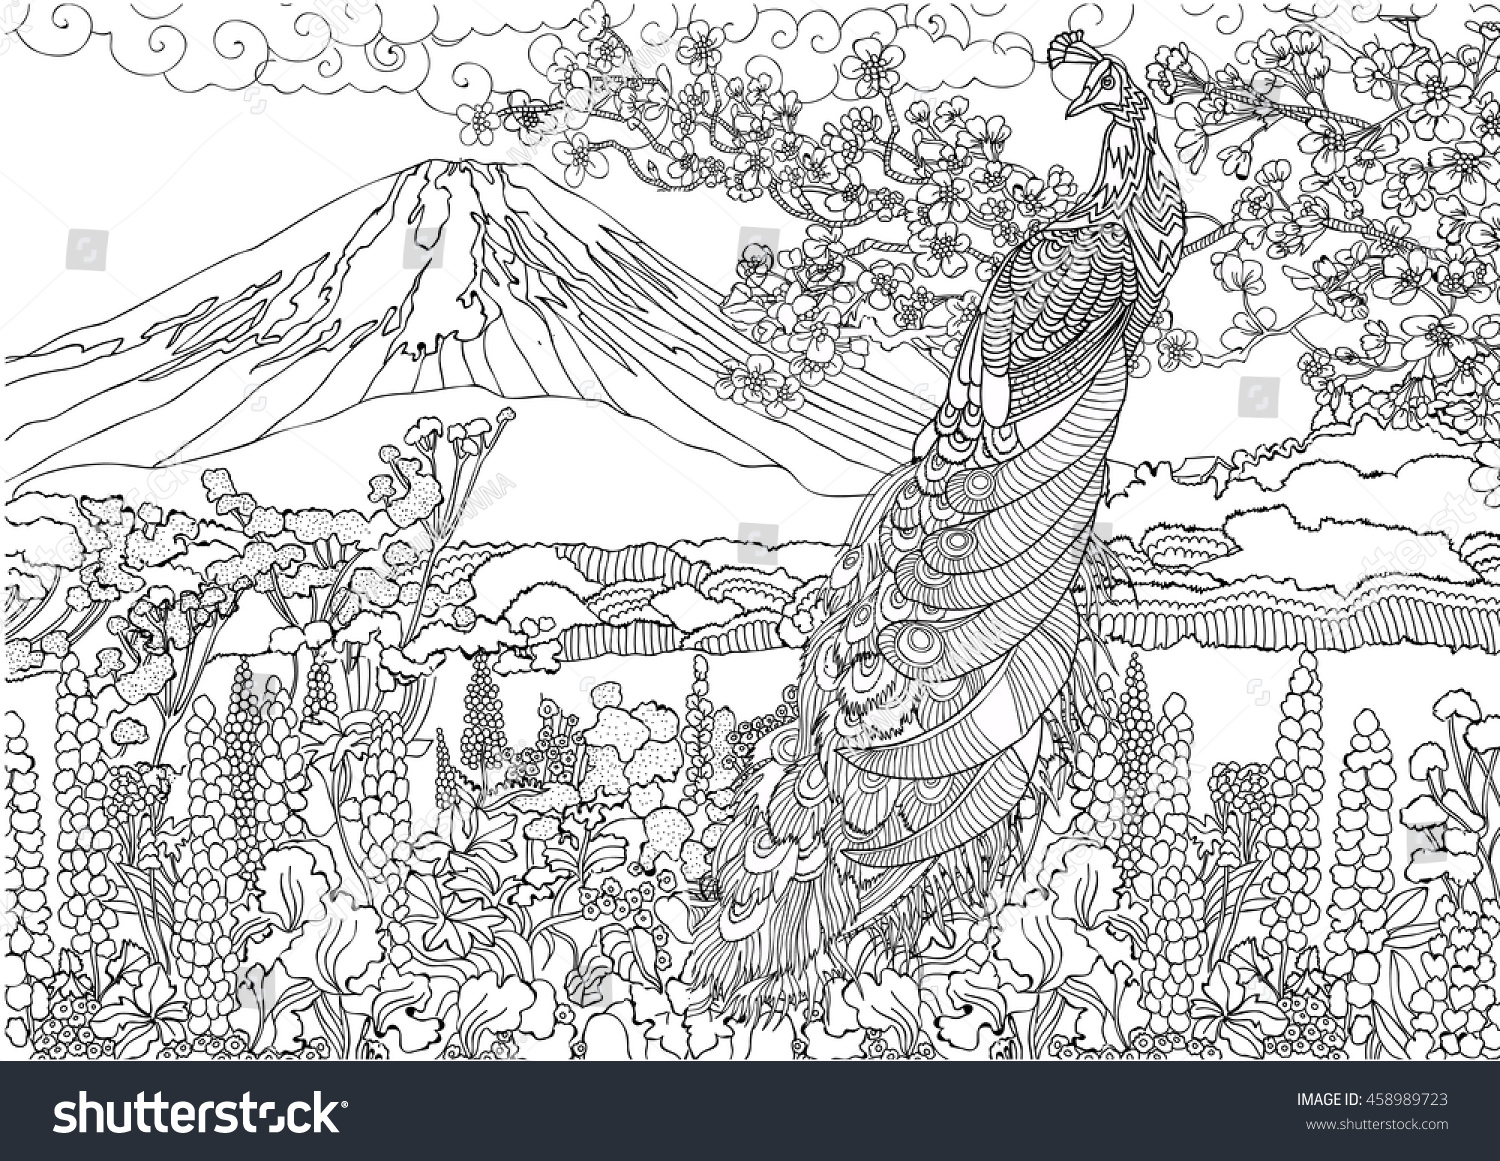 mountain in japan fujiyama landscape coloring pages beautiful peacock on the background - Mountain Landscape Coloring Pages